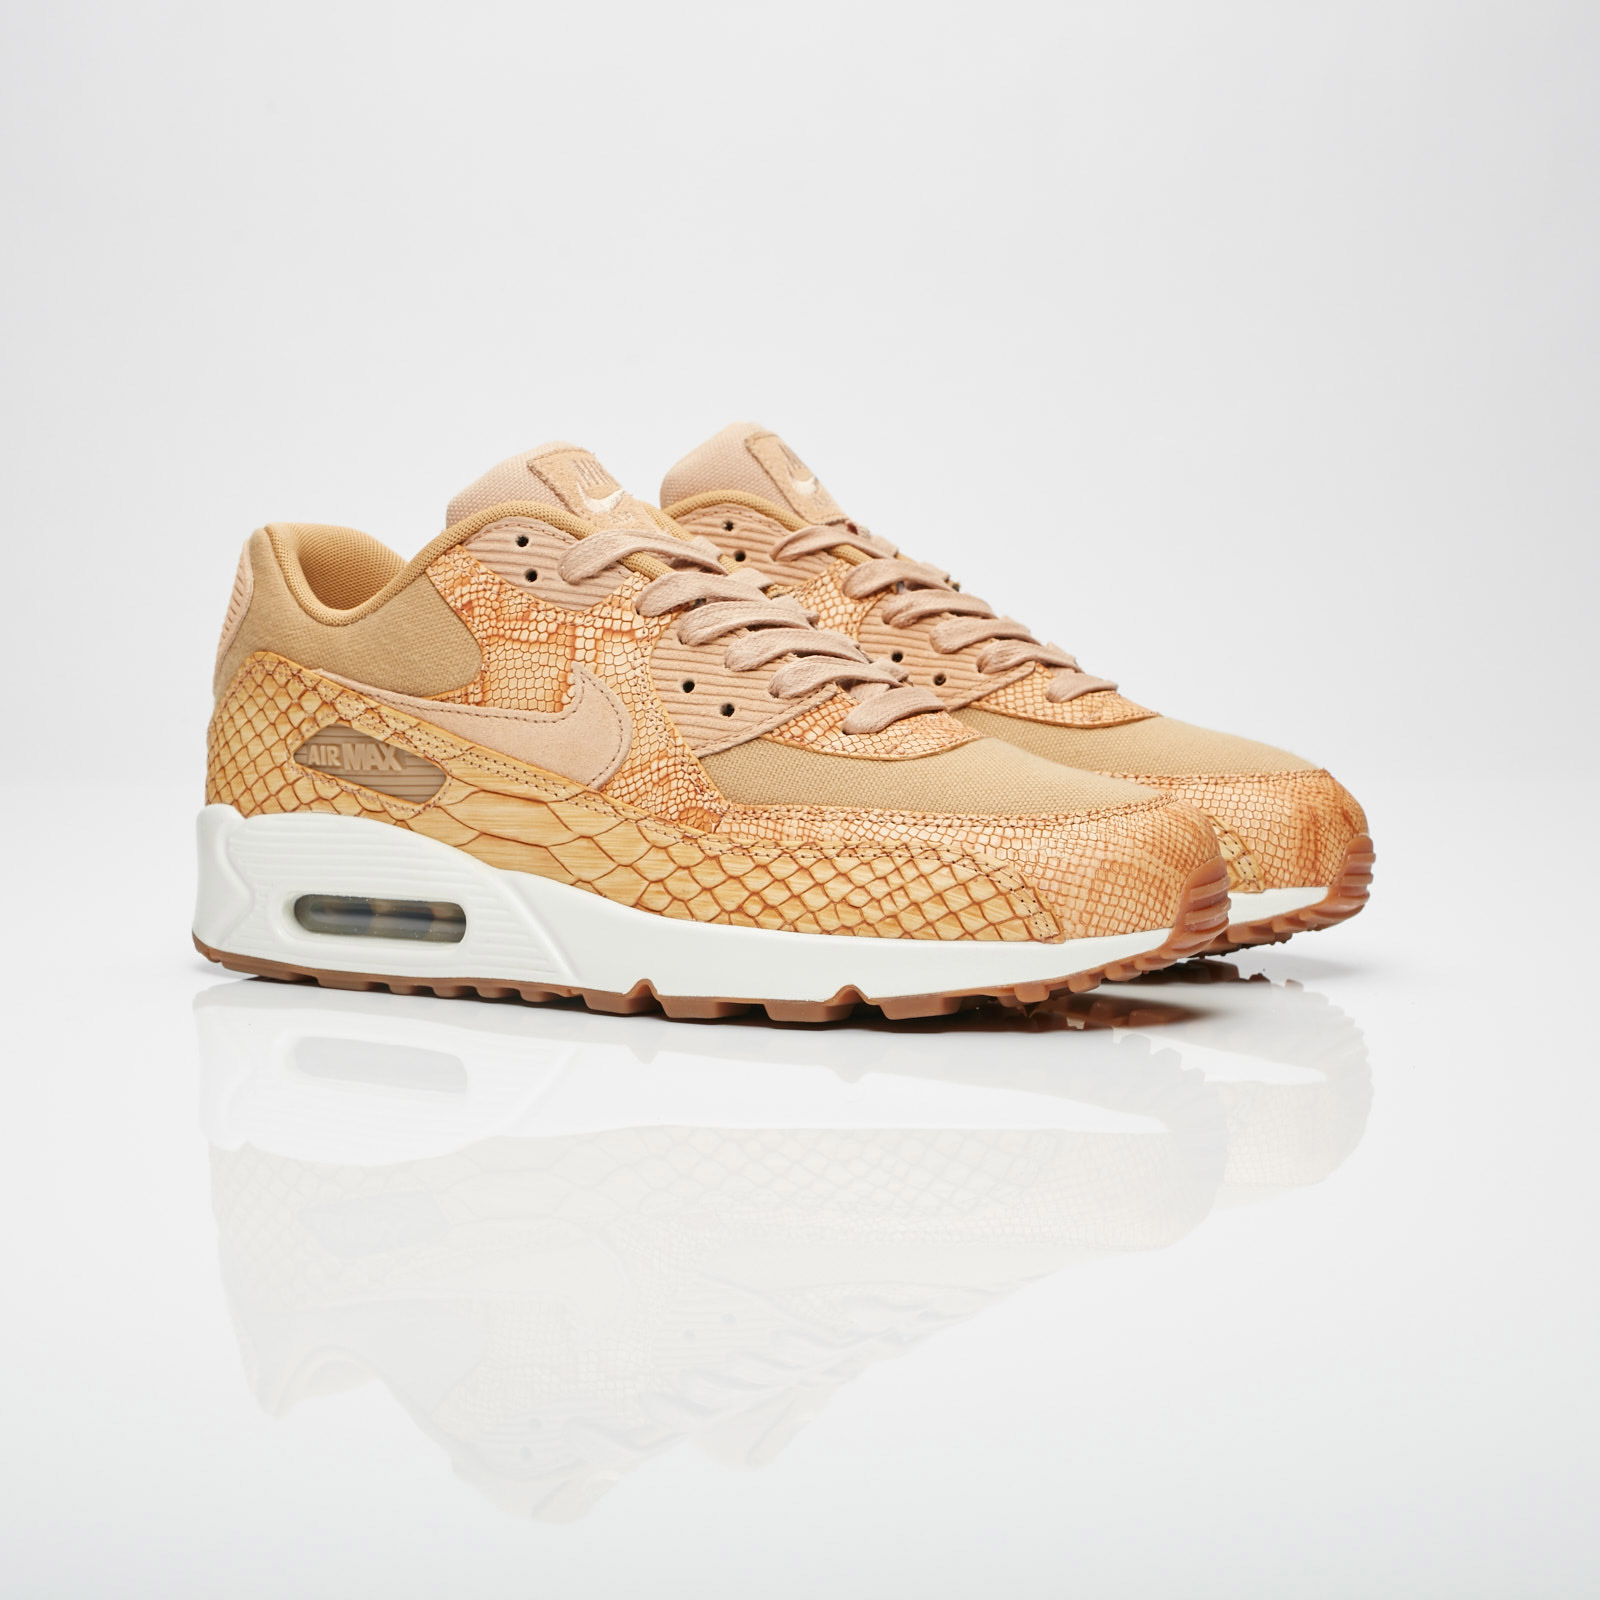 the best attitude 5fa12 d50bb Nike Air Max 90 Premium Ltr - Ah8046-200 - Sneakersnstuff I ...